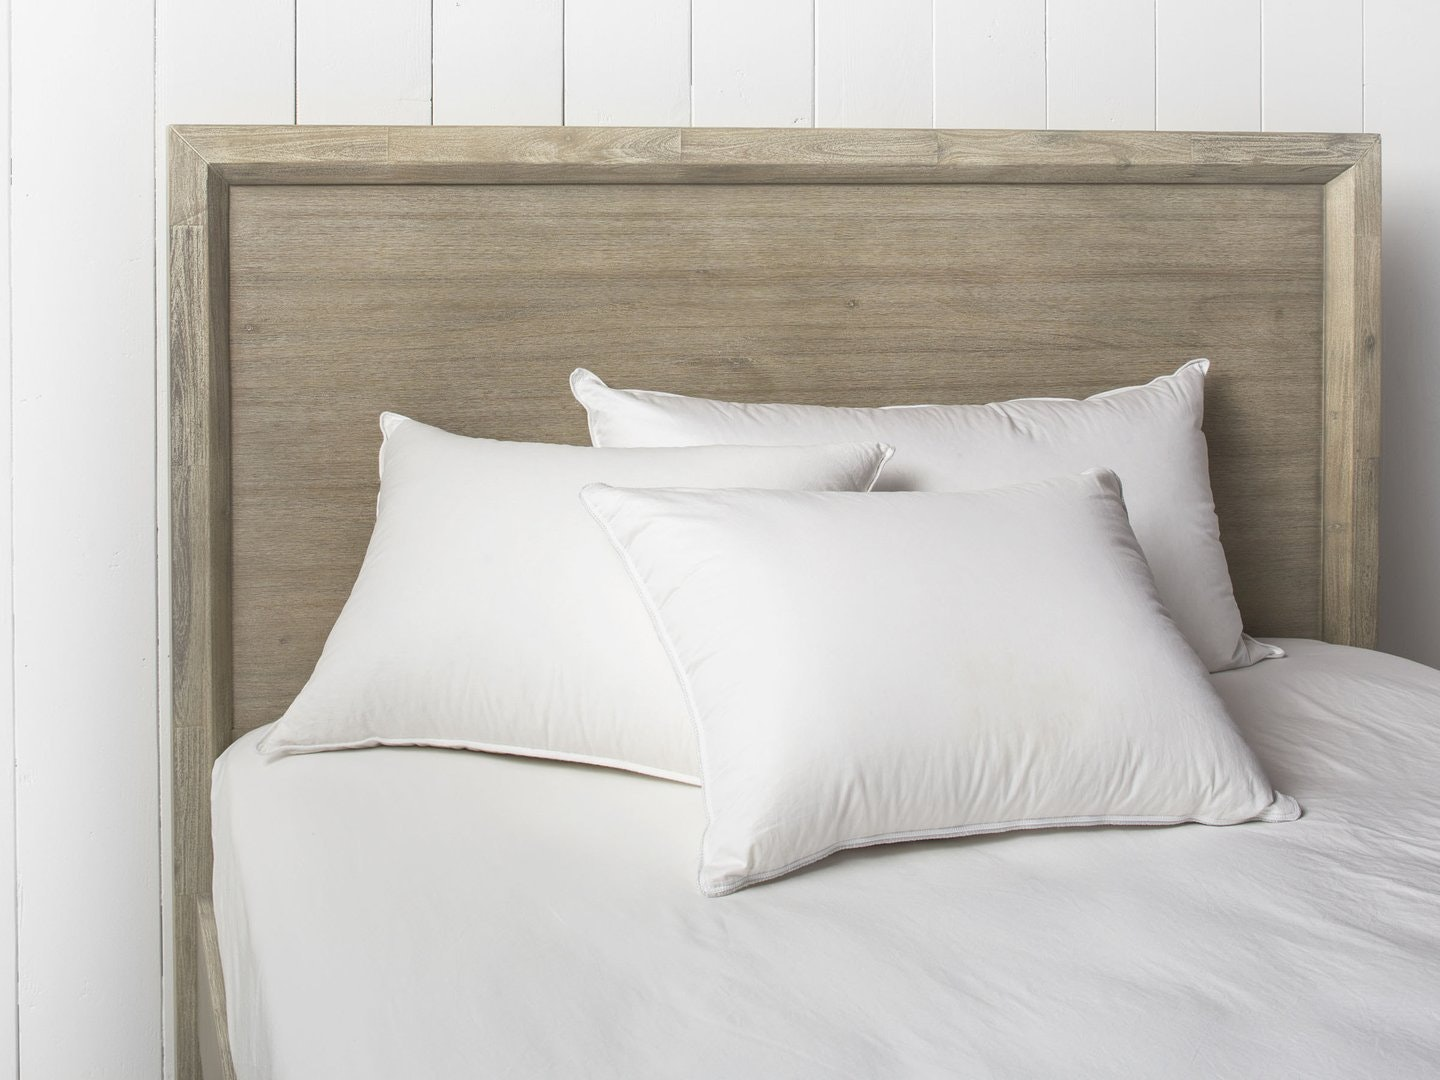 Afluffy down pillow for side and back sleepers